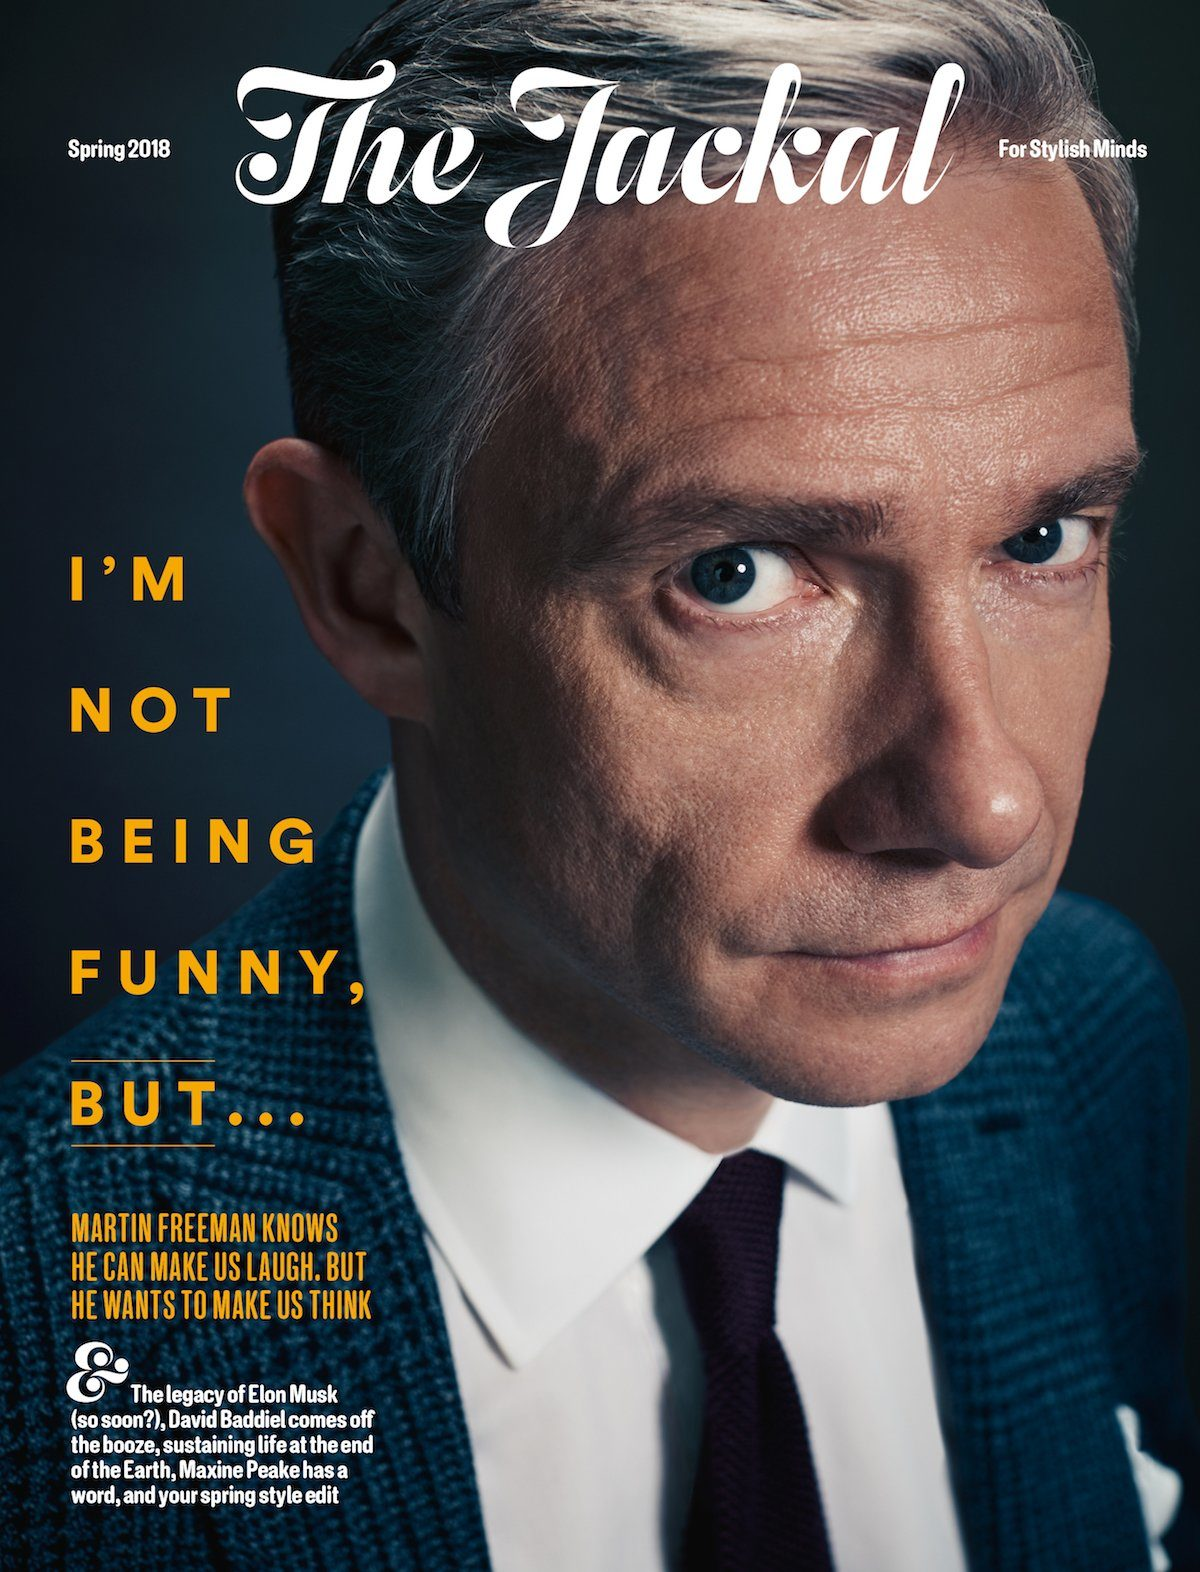 Men's magazine The Jackal celebrates its first year in print as editor Robin Swithinbank aims to please 'stylish minds'